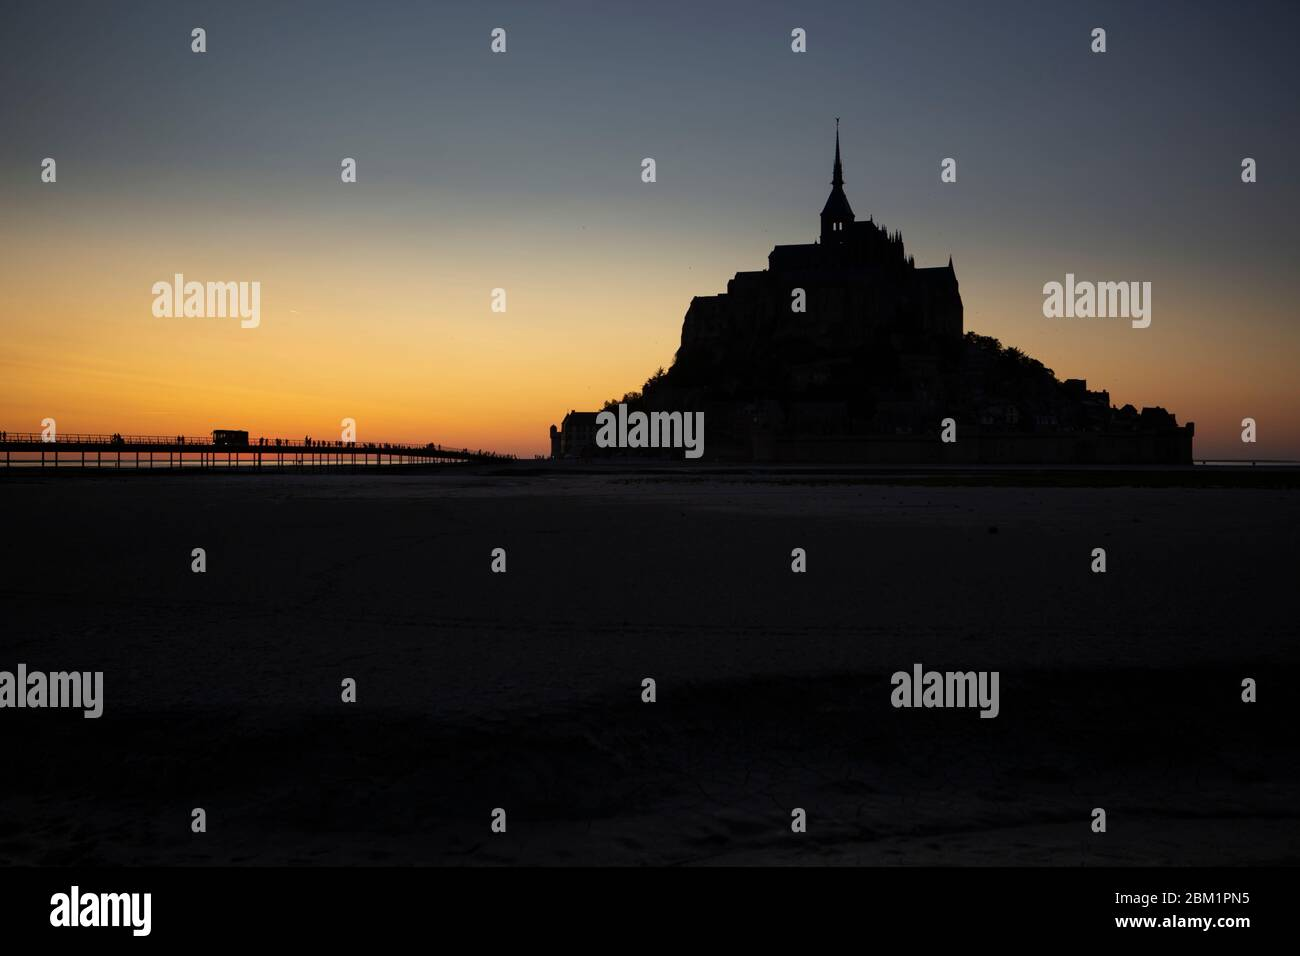 Sunset silhouette of Le Mont Saint Michel, France. People are walking on the bridge to visit the monastery. Stock Photo